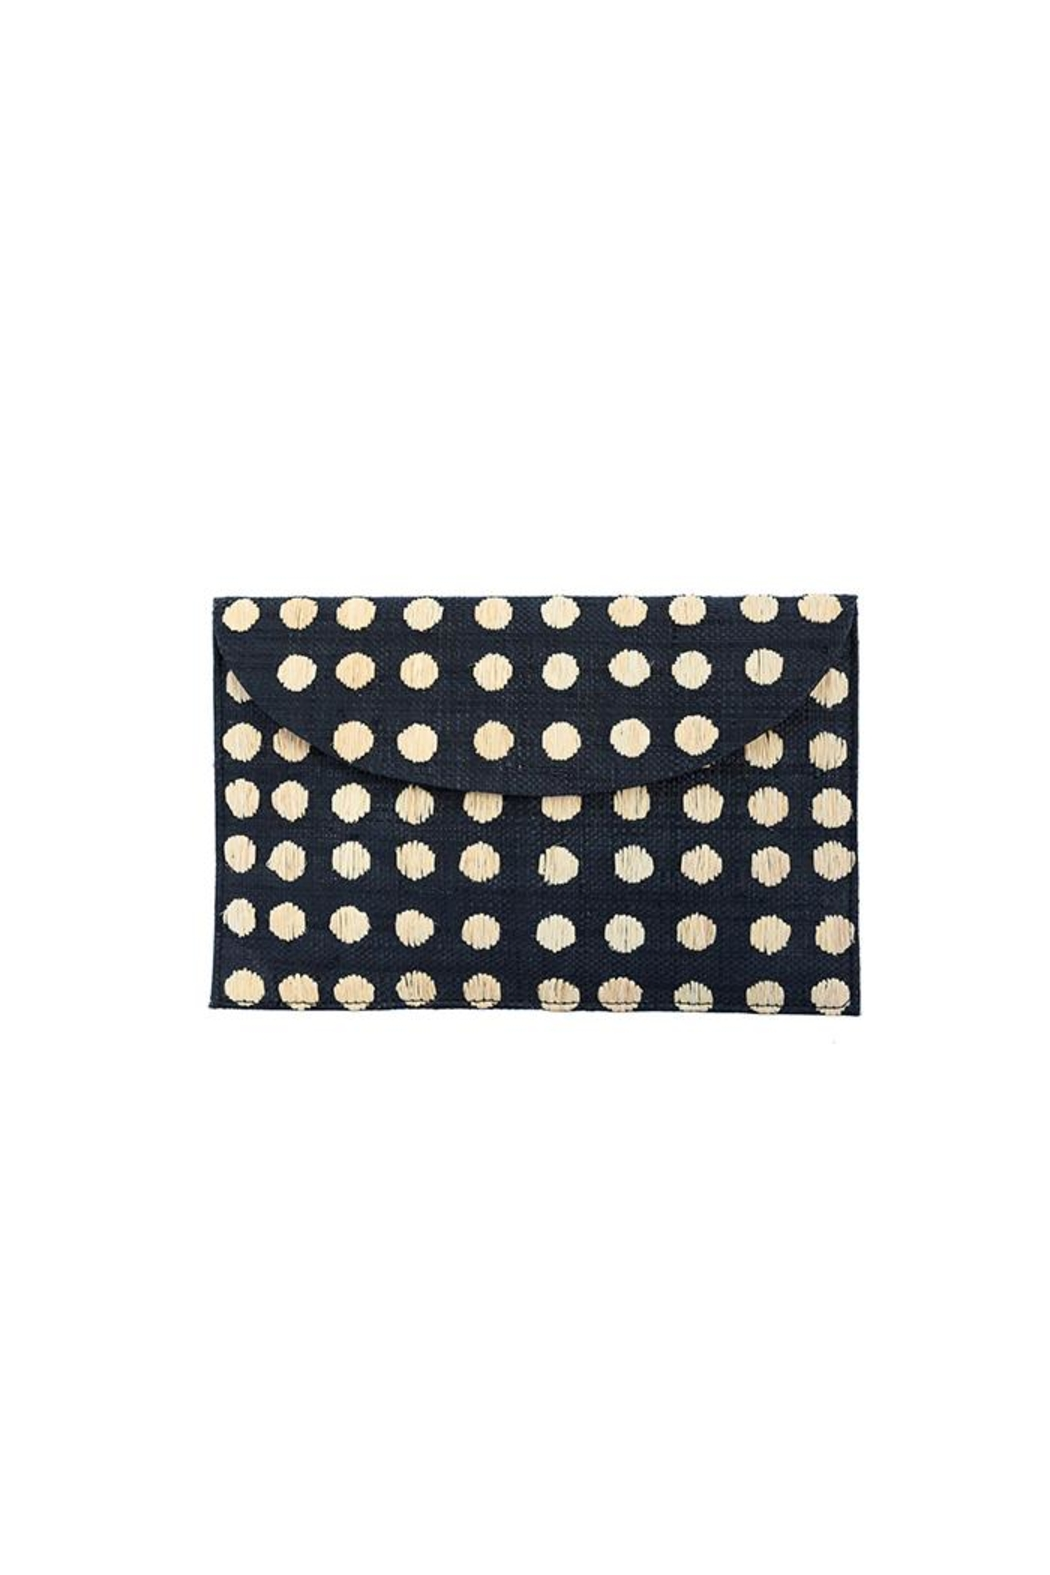 Kayu Tulum Black Clutch - Front Cropped Image